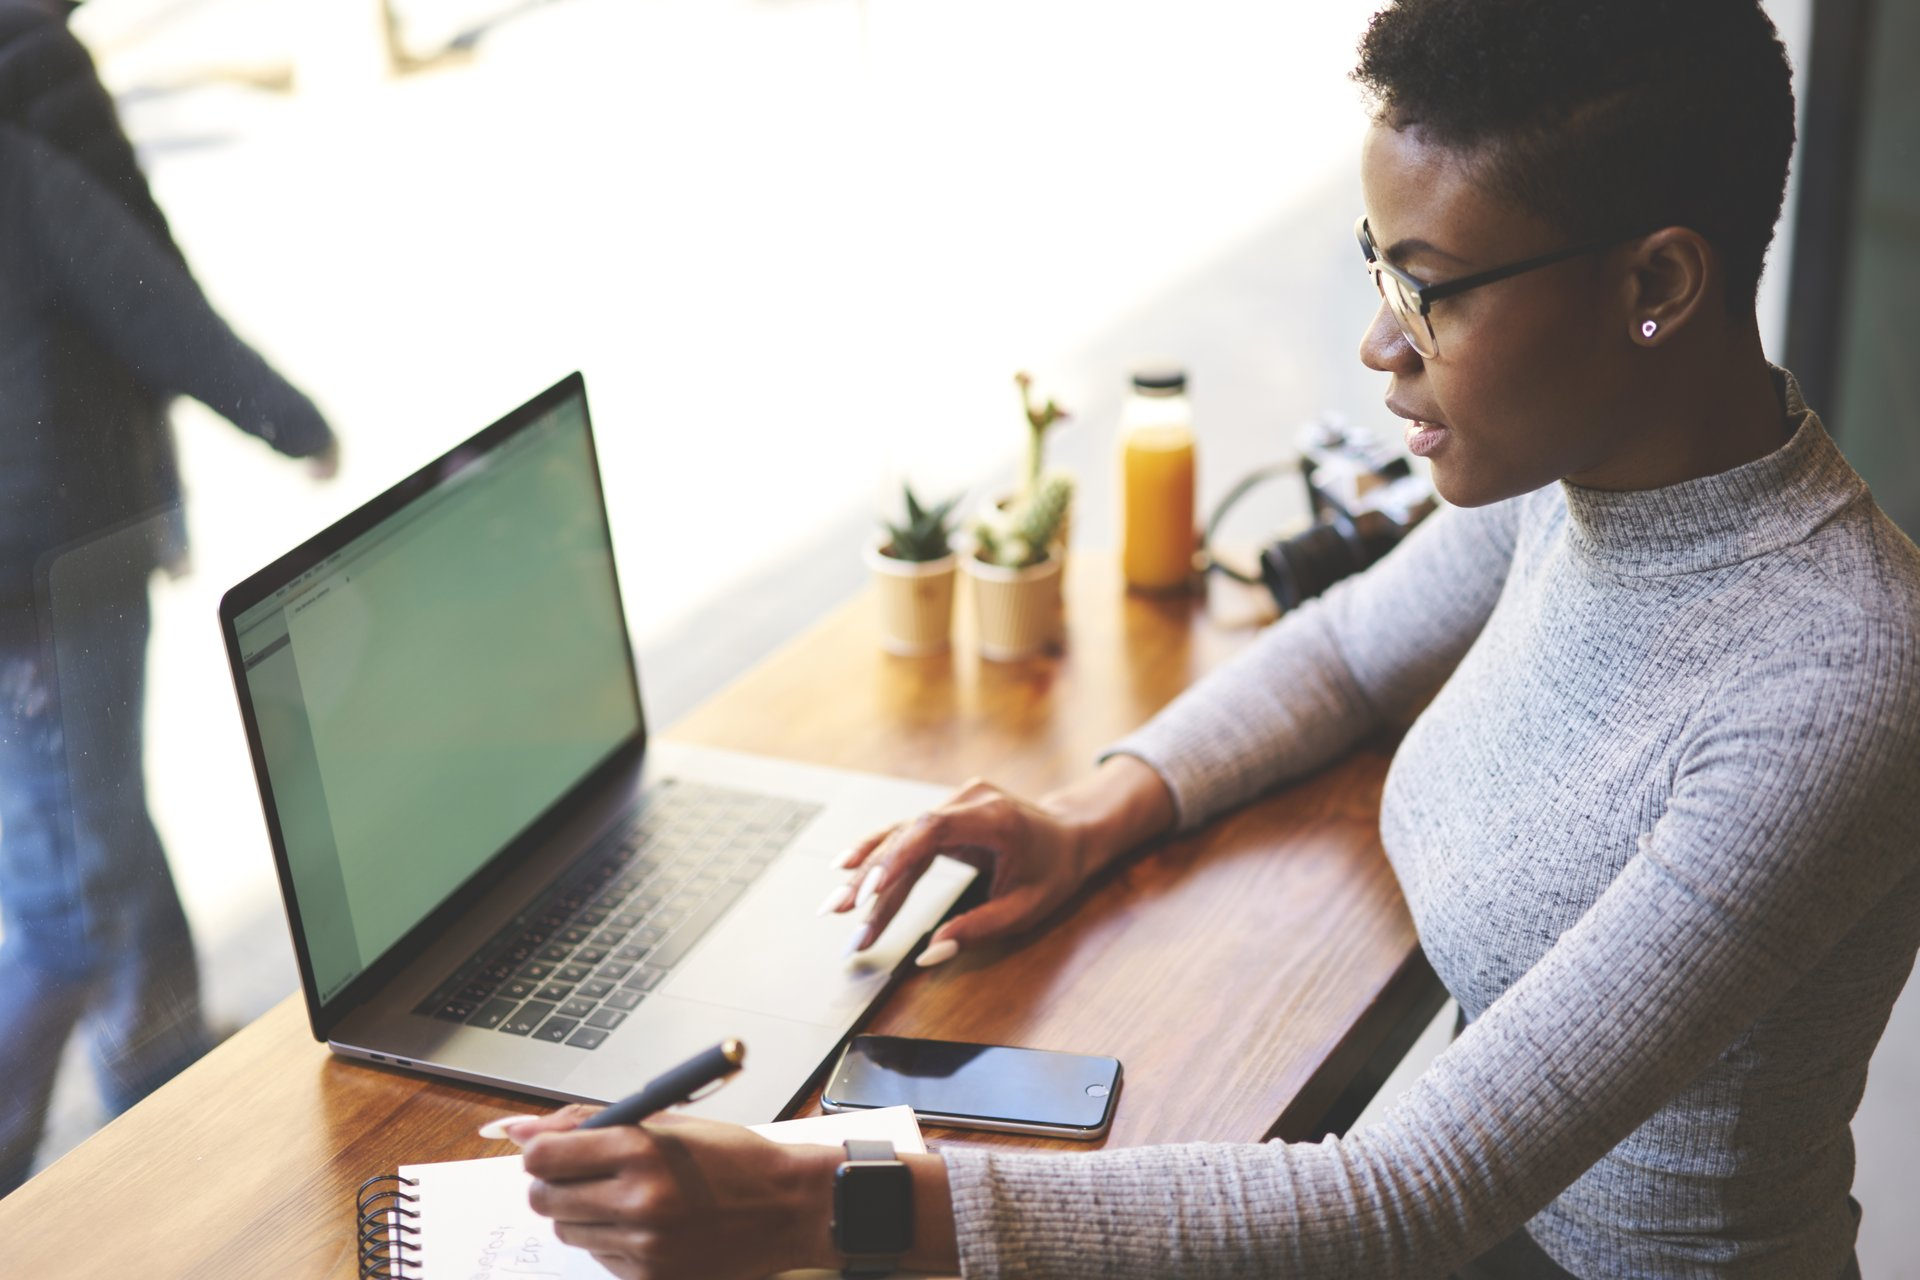 A Black woman works remotely on a laptop computer